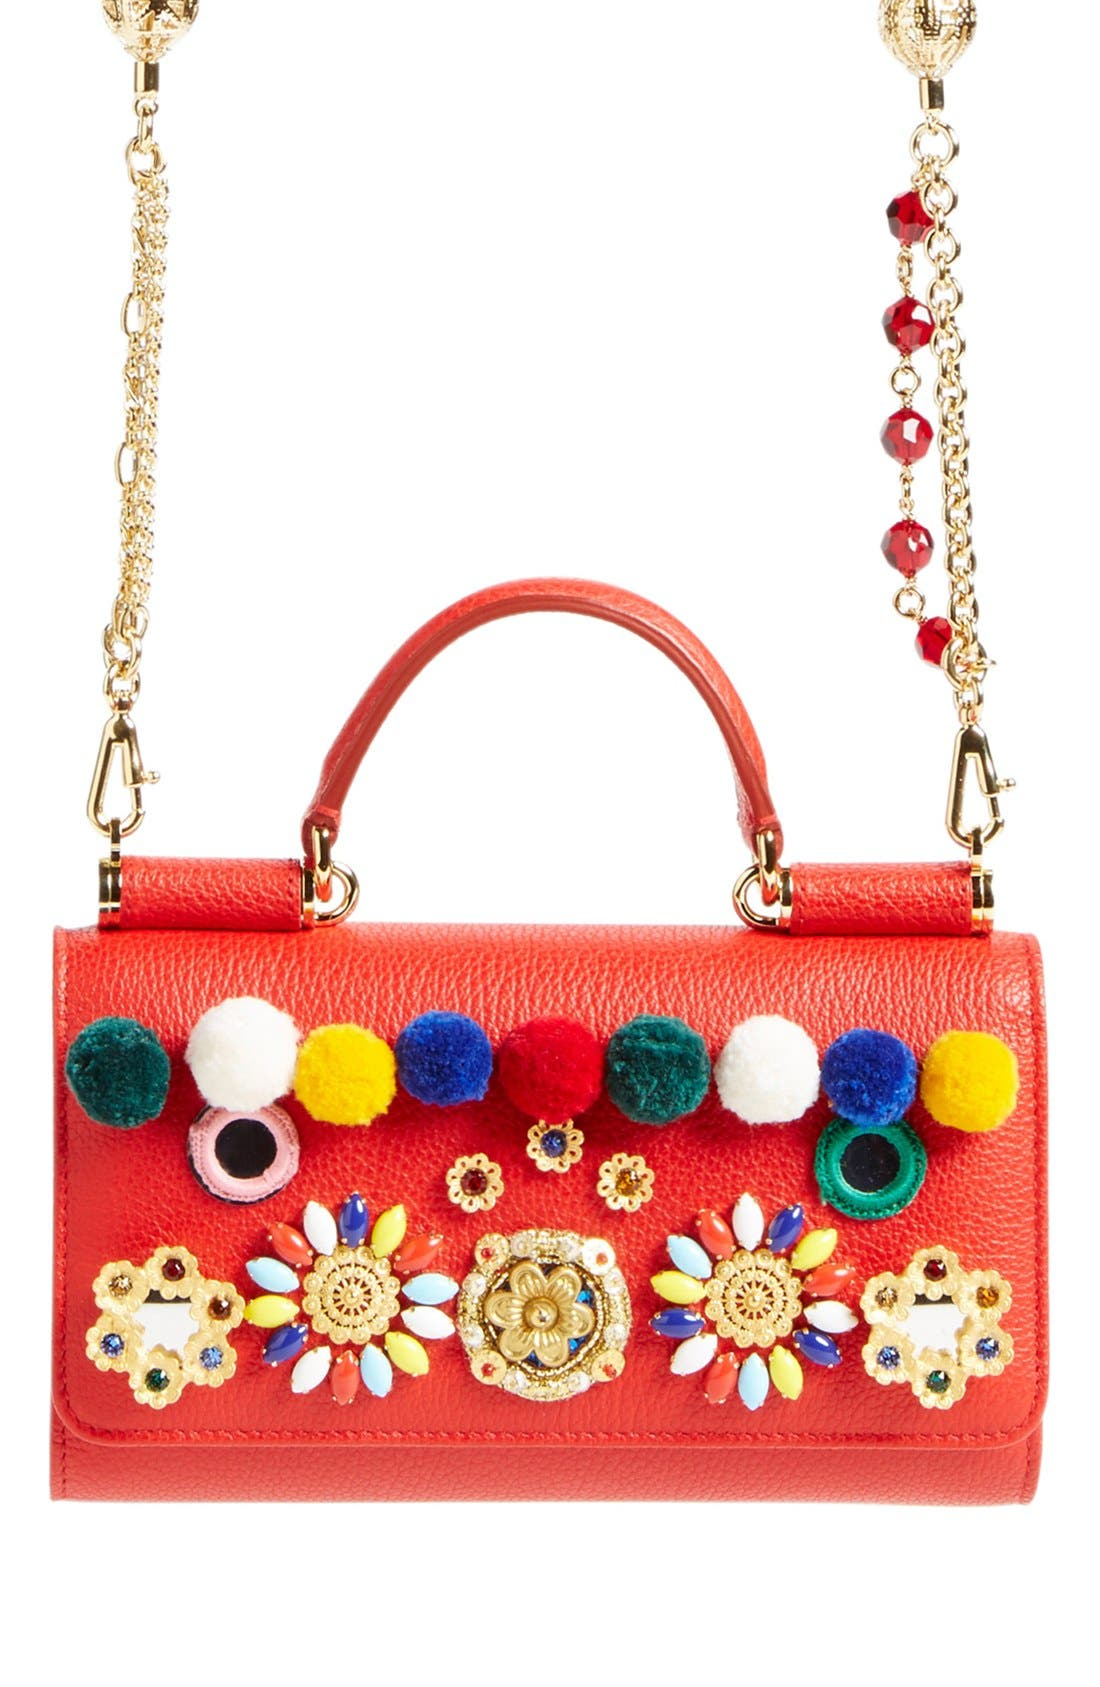 Alternate Image 1 Selected - Dolce&Gabbana 'Miss Sicily' Floral & Pompom Appliqué Calfskin Leather Wallet on a Chain